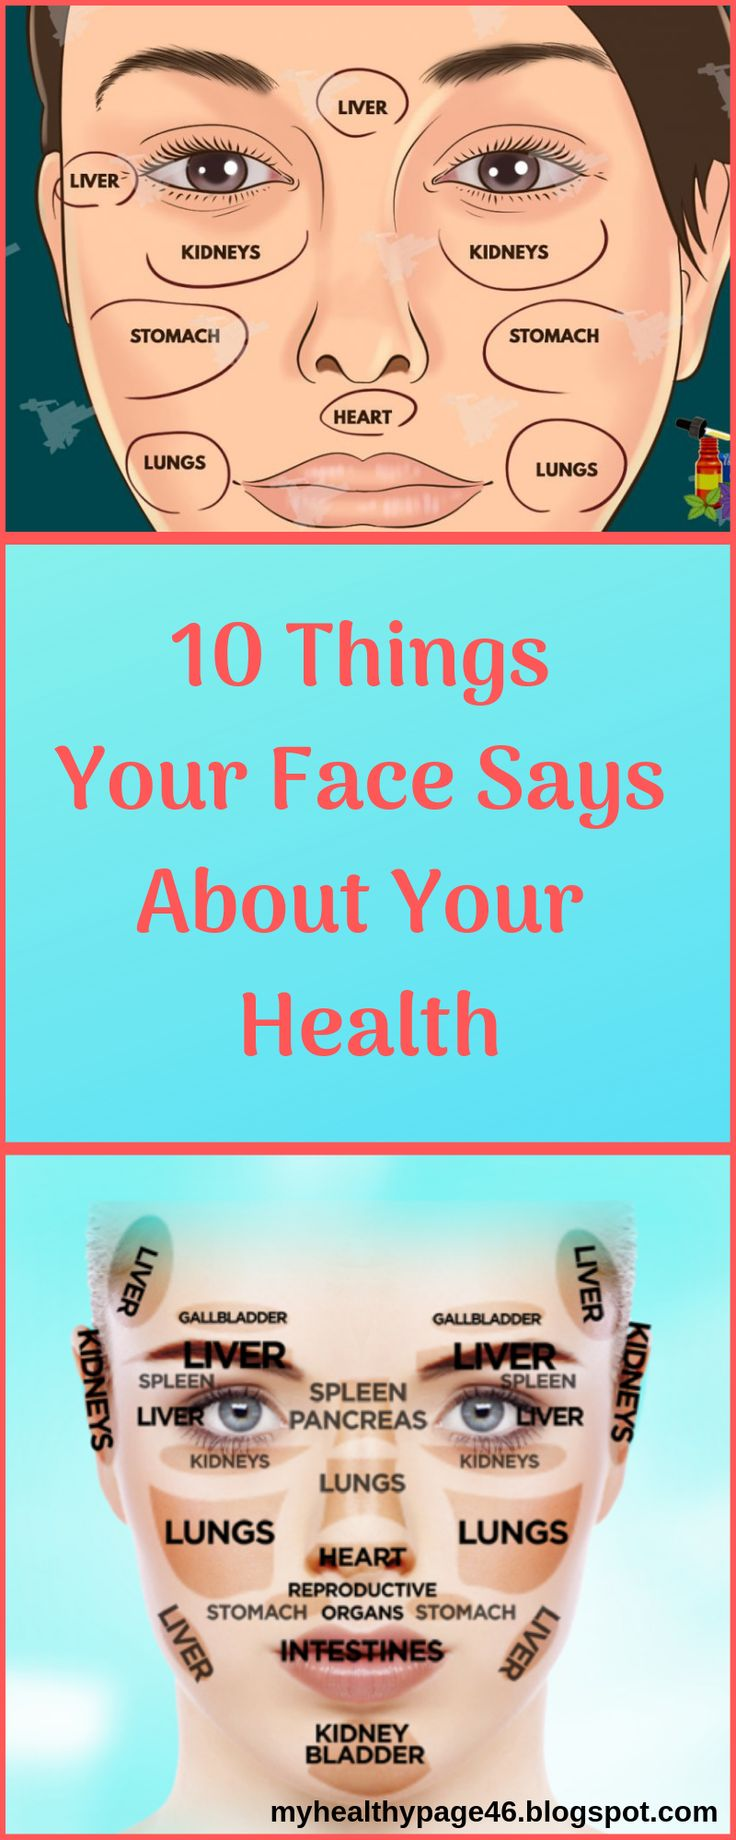 10 Things Your Face Says About Your Health